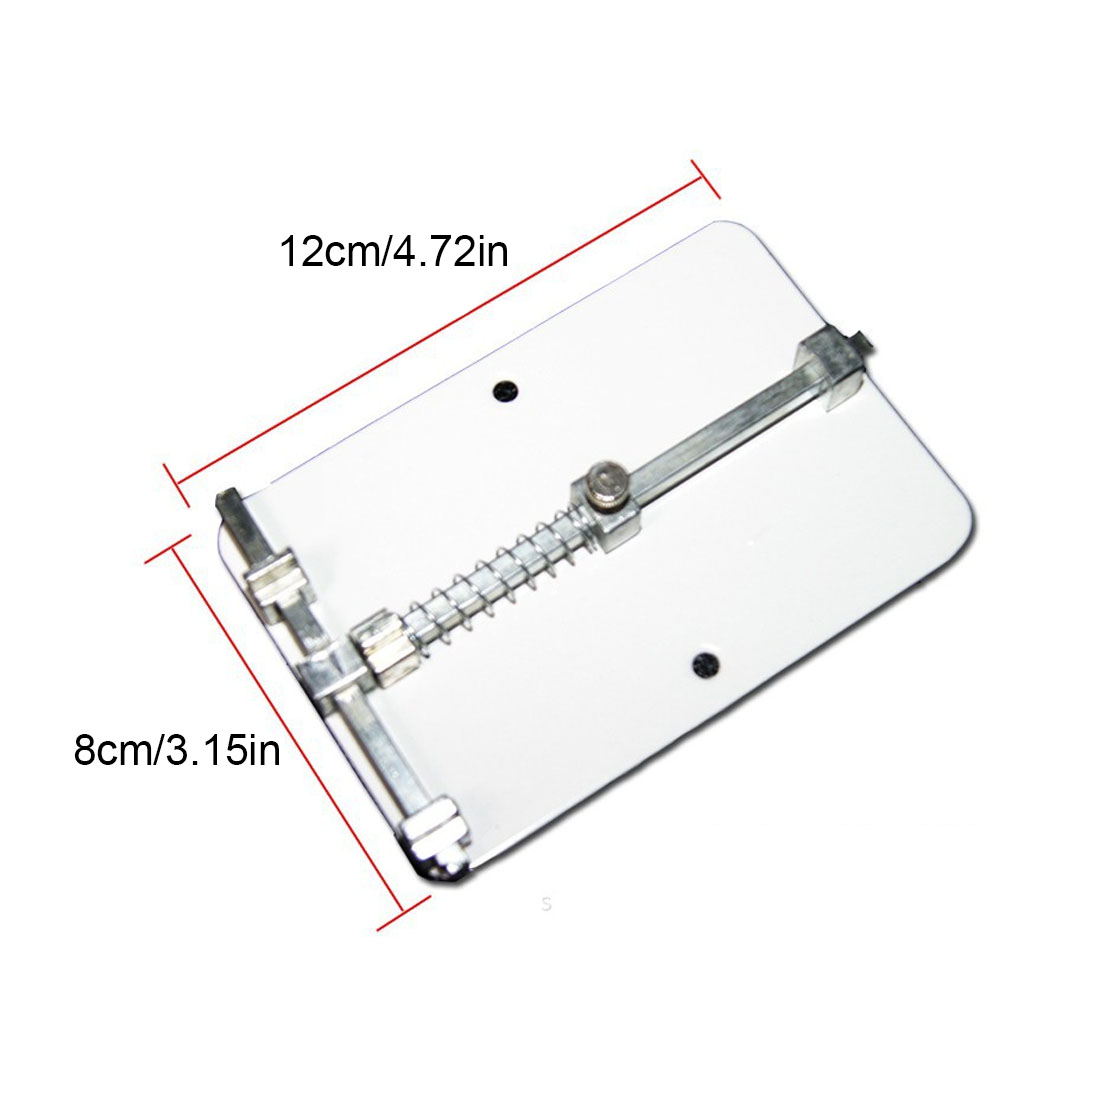 Mobile Phone Board Repair Fixture PCB Holder Work Station Platform Fixed Support Clamp Steel PCB Board Soldering Repair Holder